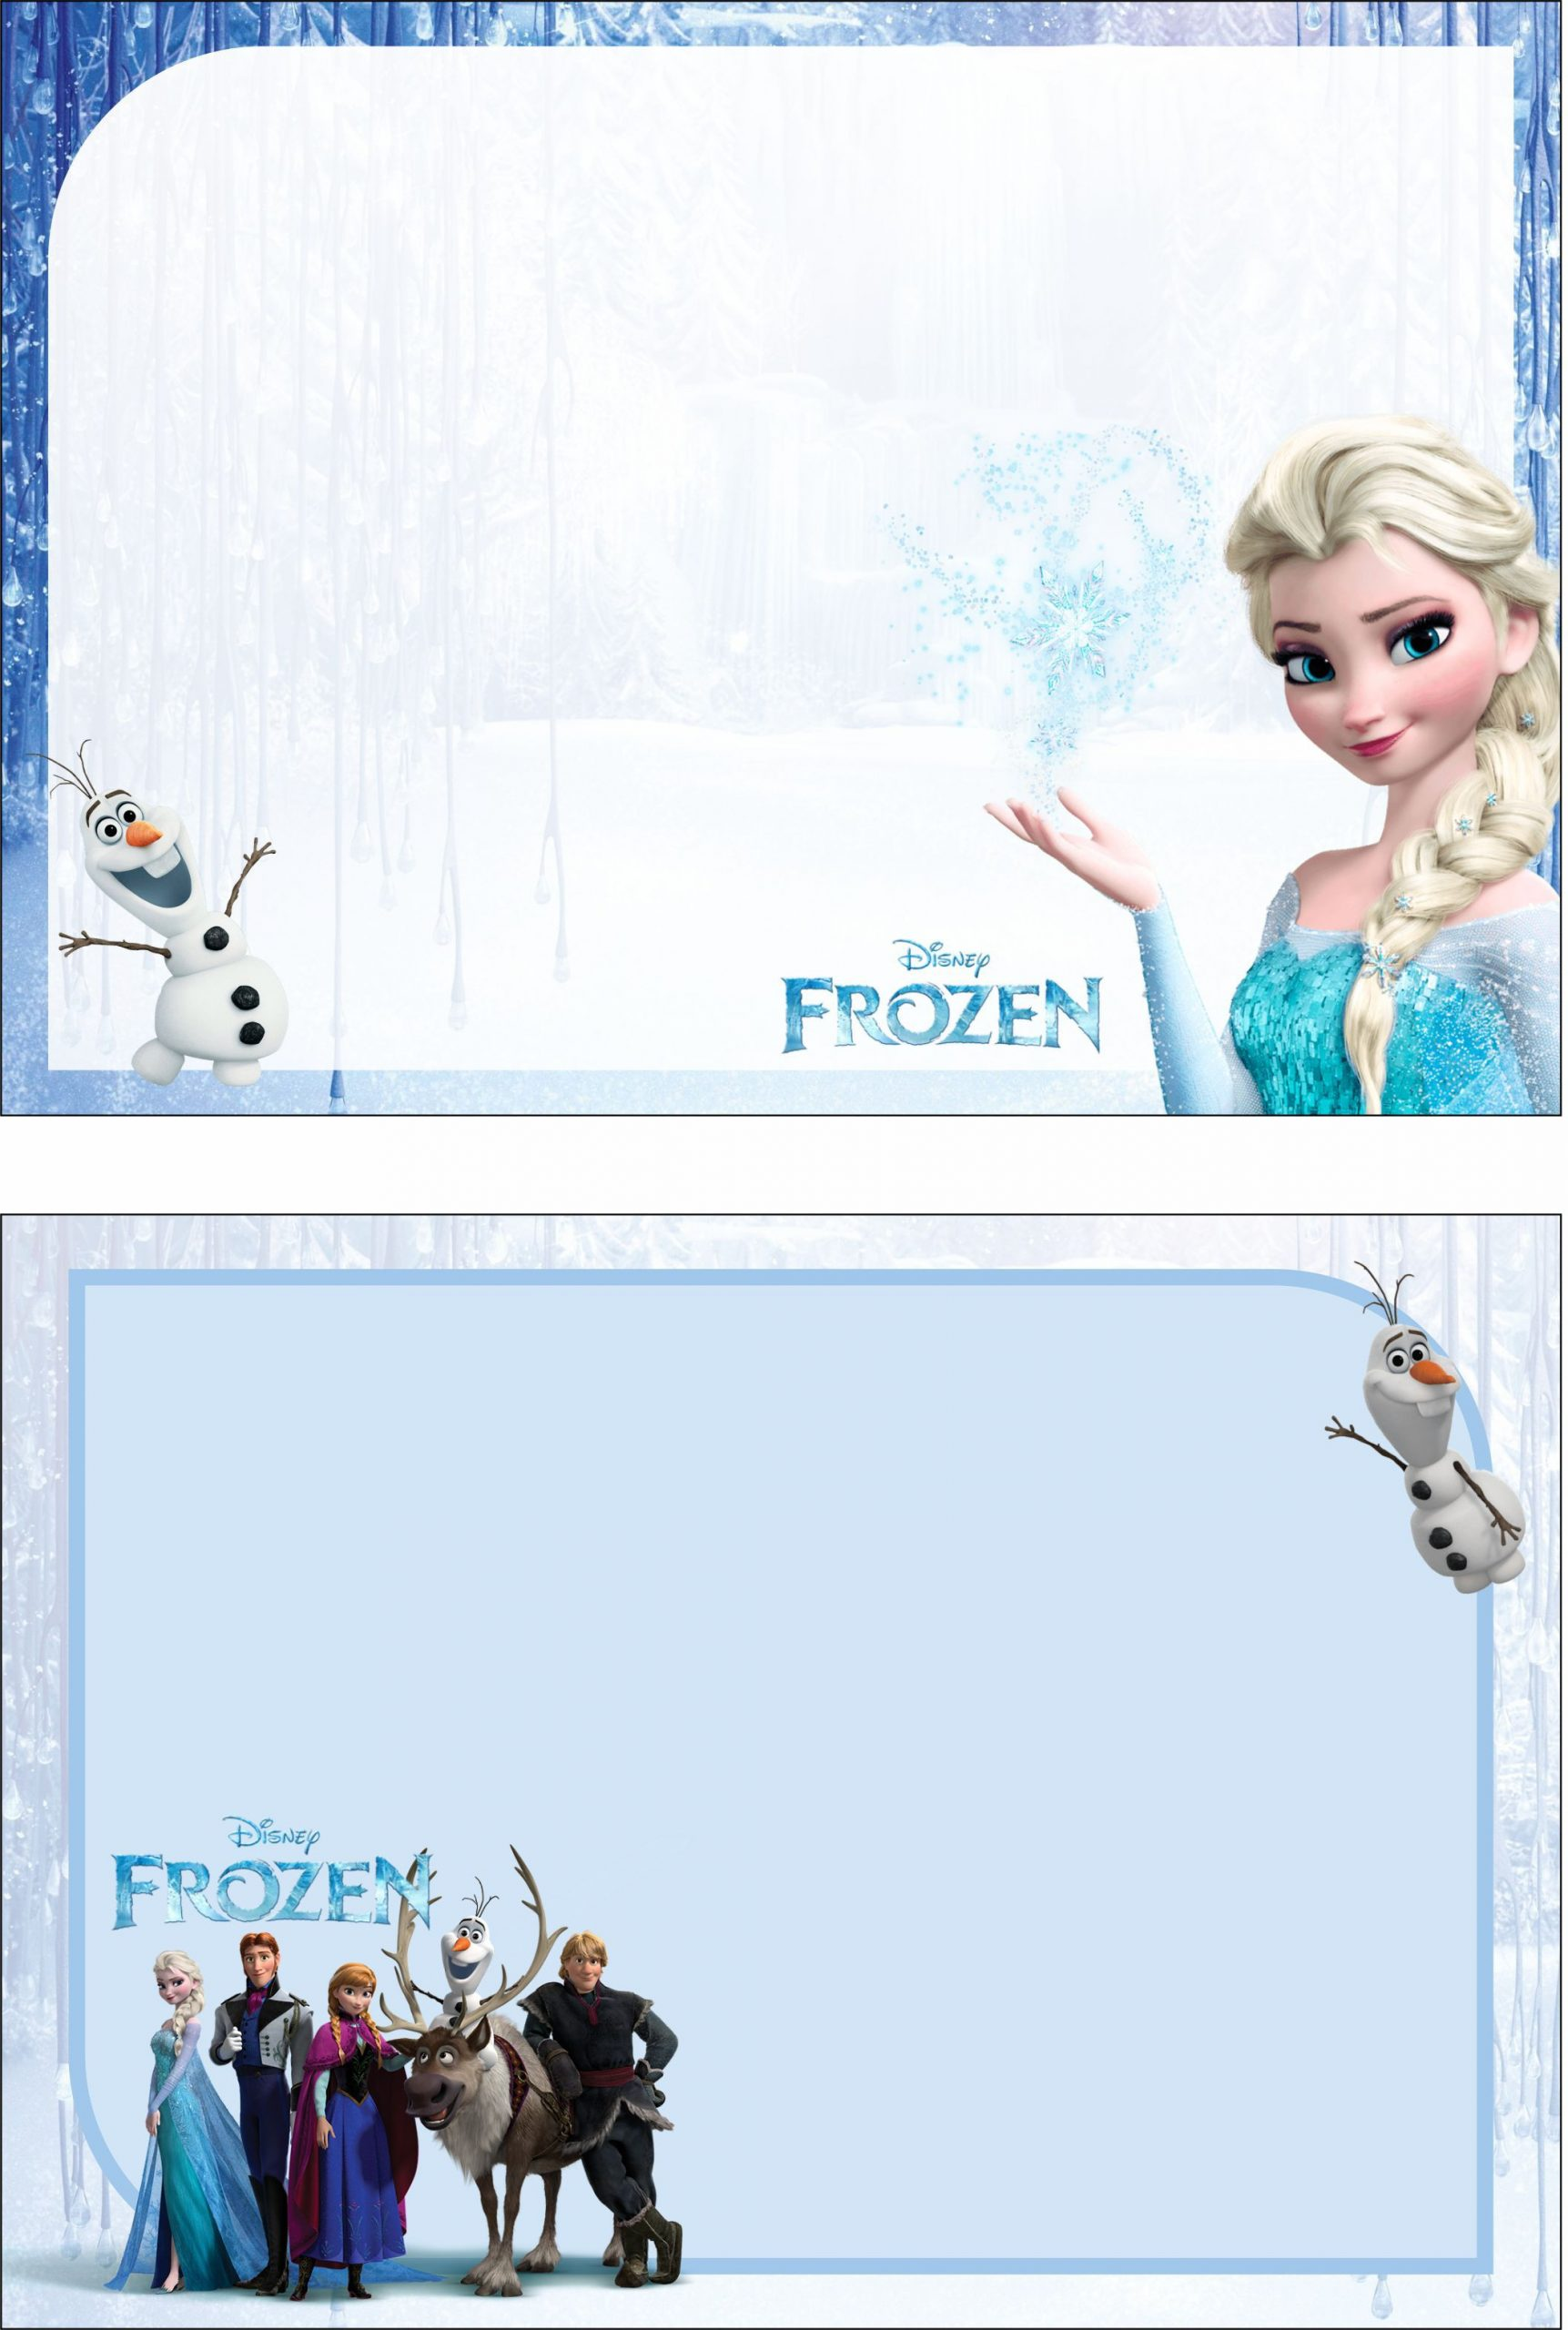 Frozen Invitations Printable Free Free Frozen 2 Birthday Party Kit Templates In 2020